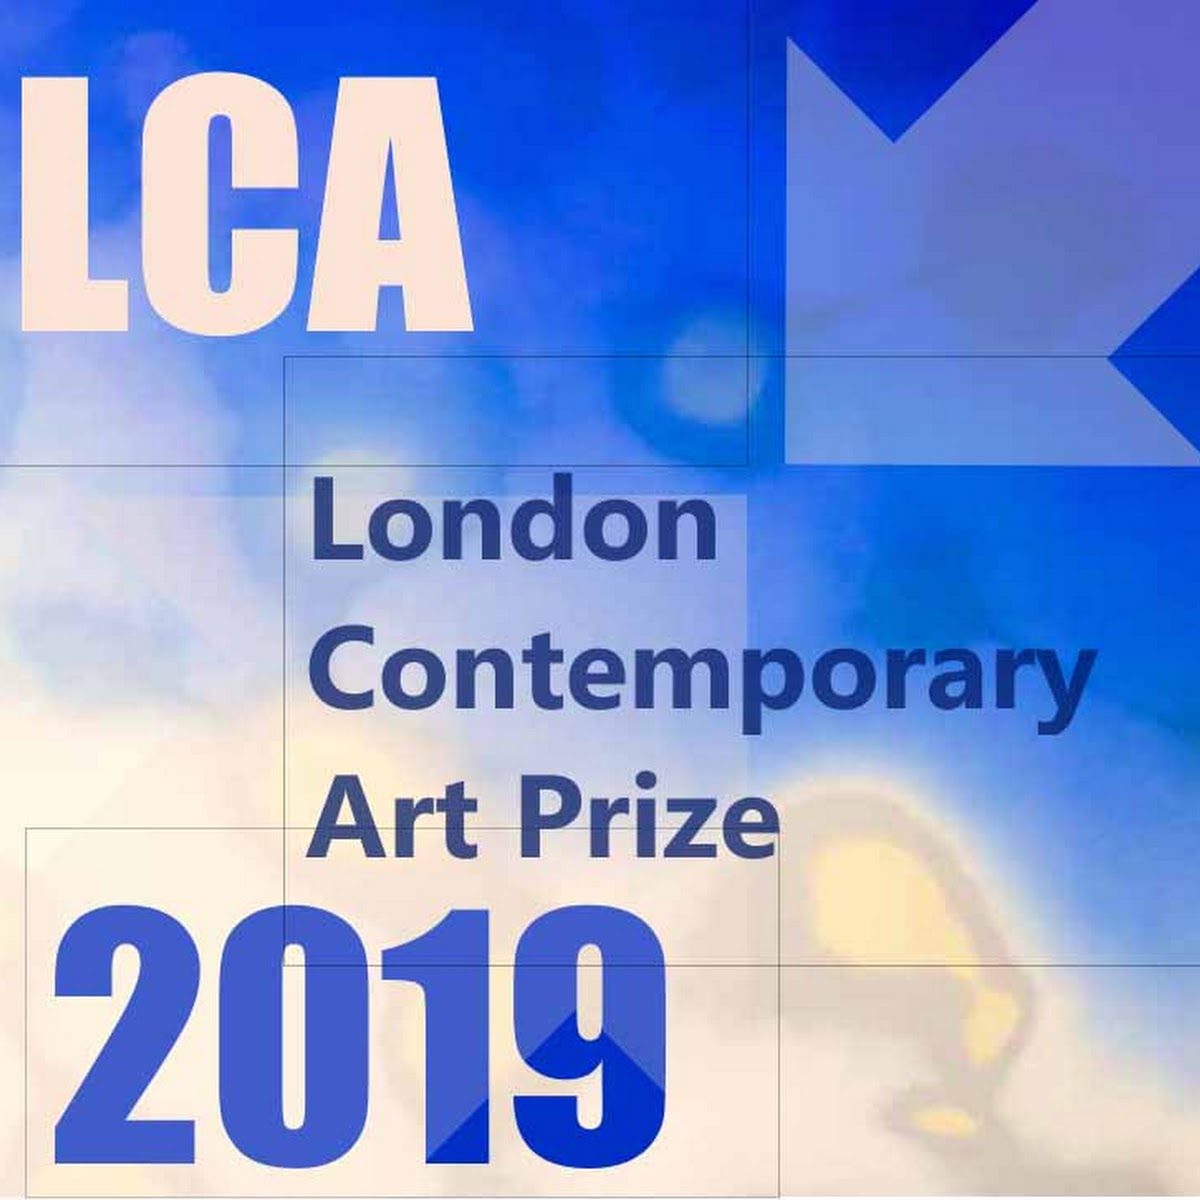 London Contemporary Art Prize 2019